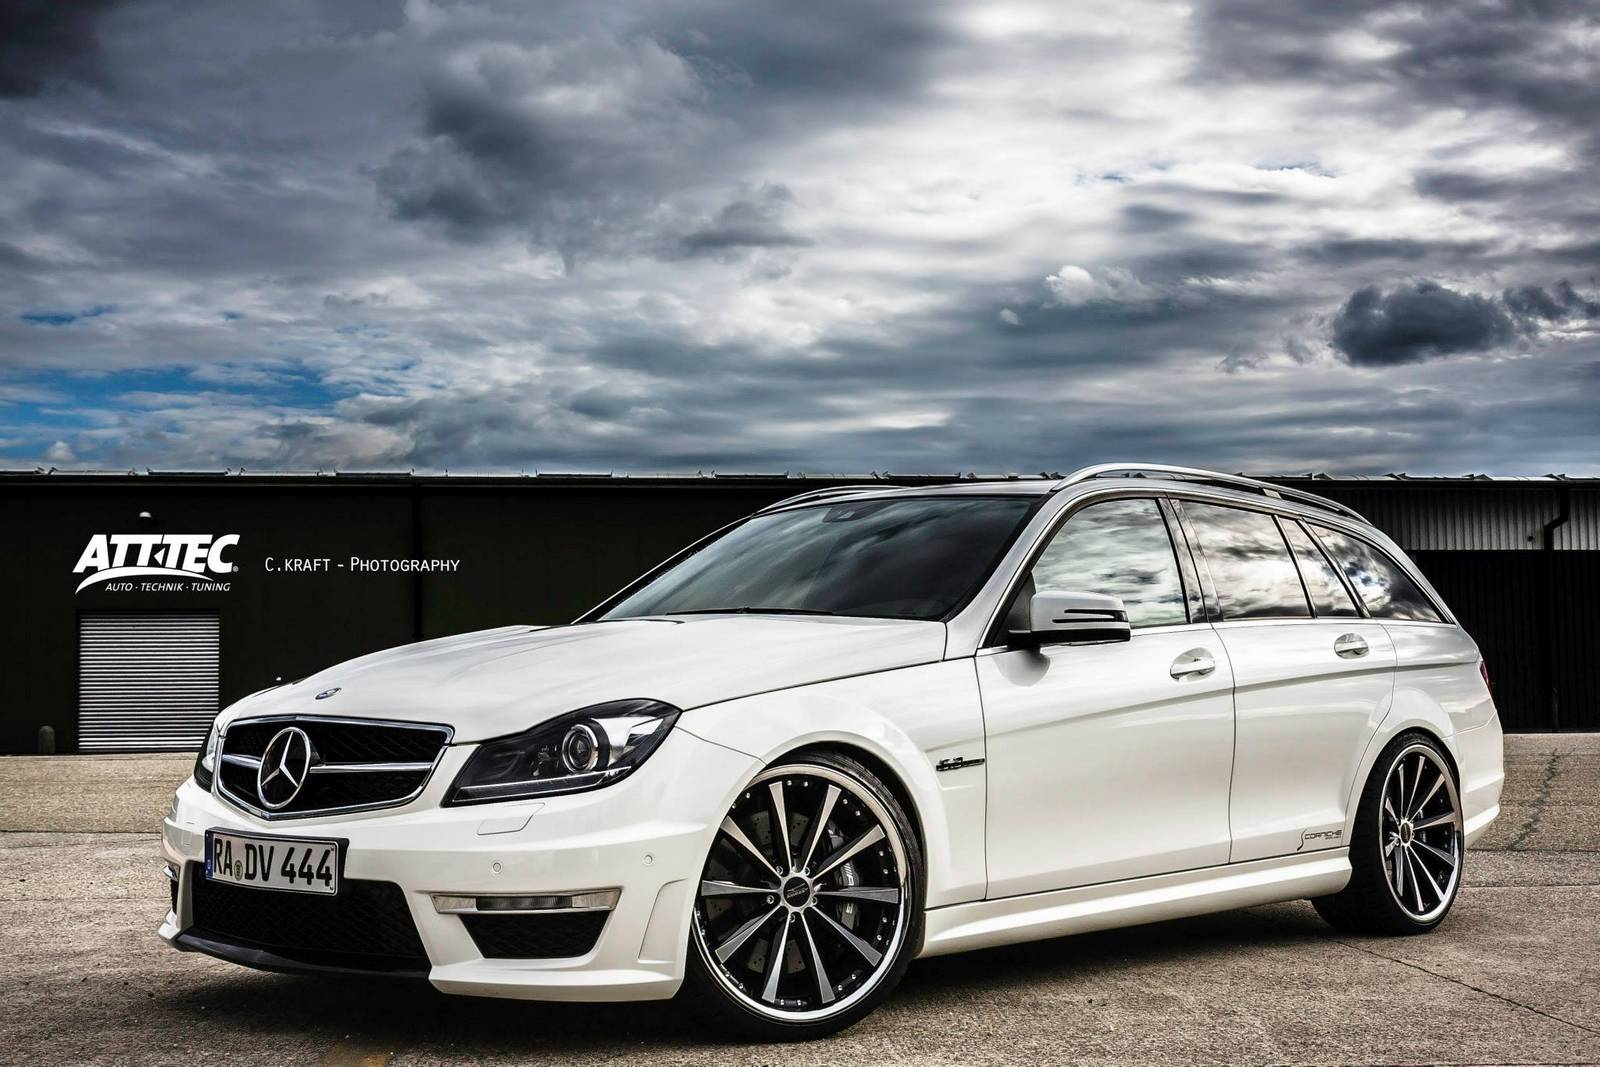 http://www.gtspirit.com/wp-content/gallery/mercedes-benz-c63-amg-estate/mercedes-benz-c63-amg-estate-6.jpg